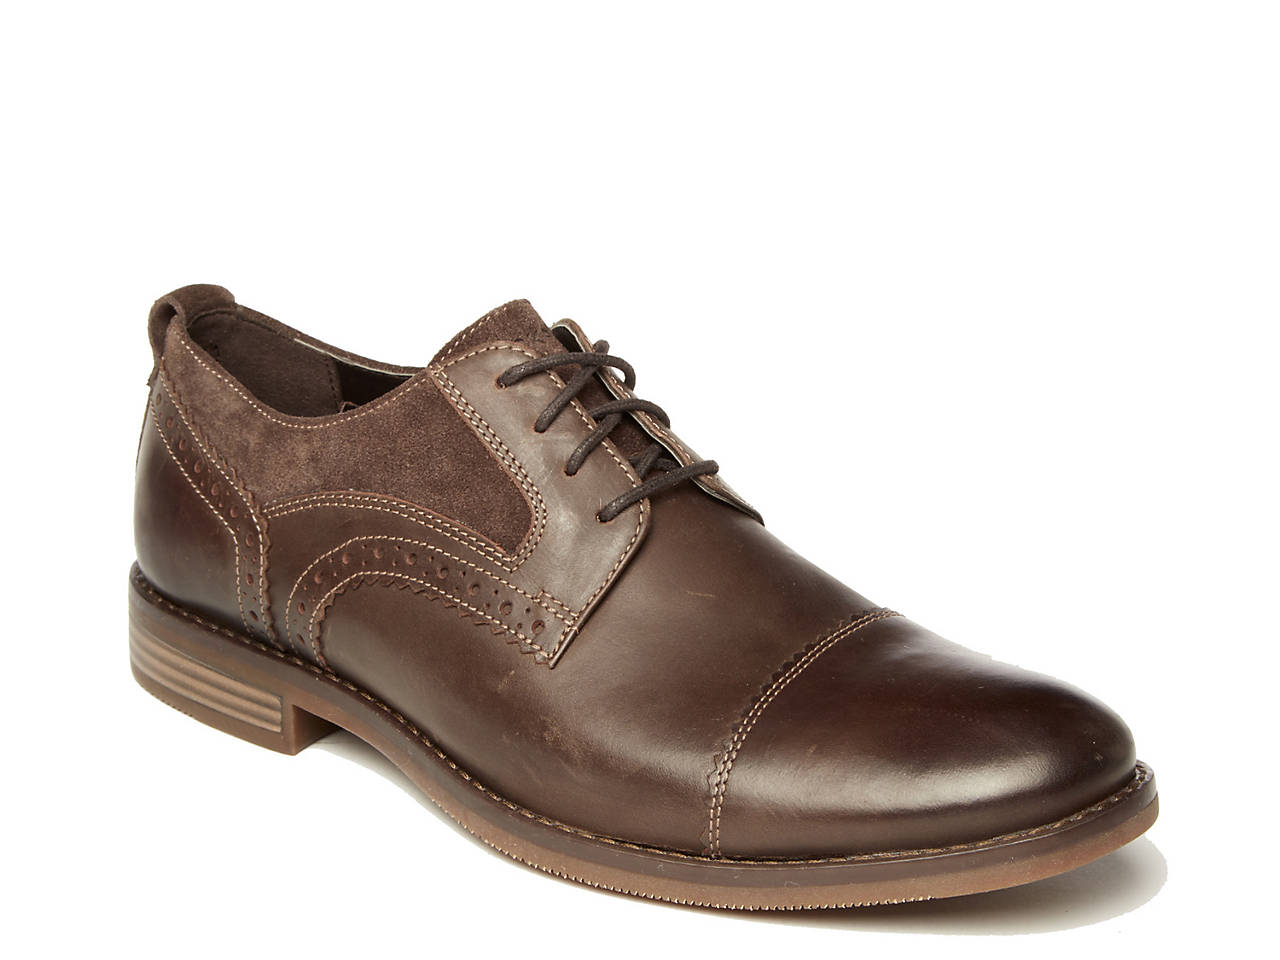 Wynstin Cap Toe Oxford